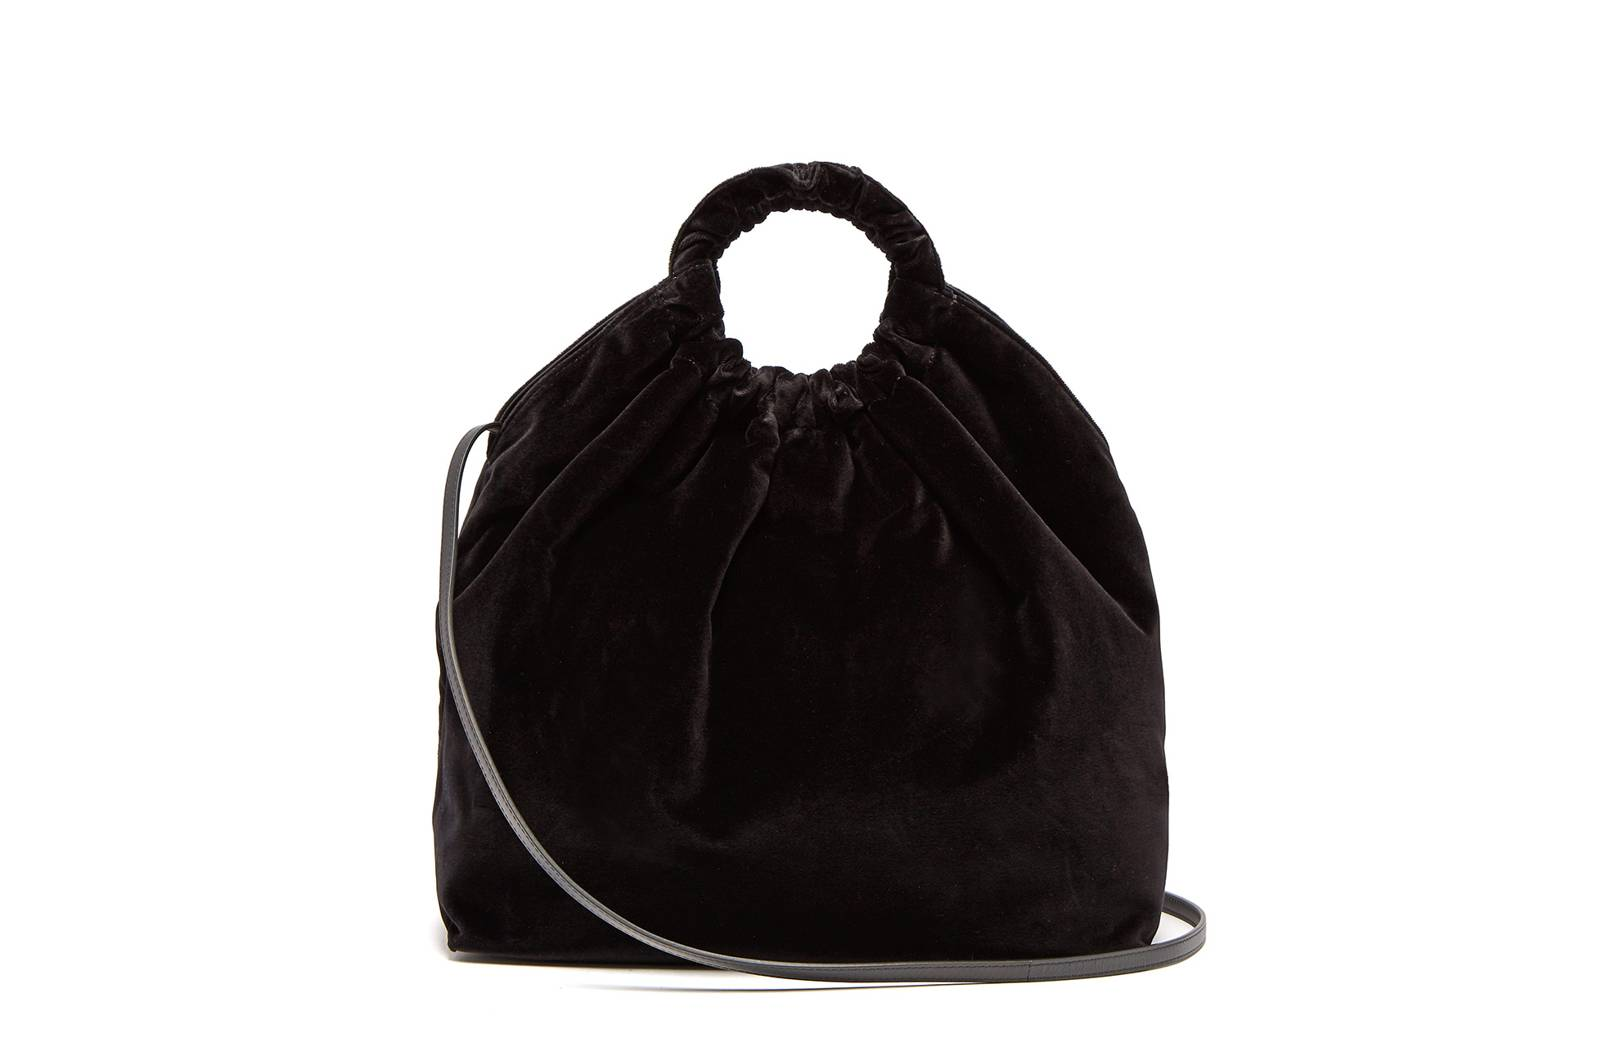 f18e865825 Black Handbags | The Best Black Bags You Can Wear With Anything | British  Vogue